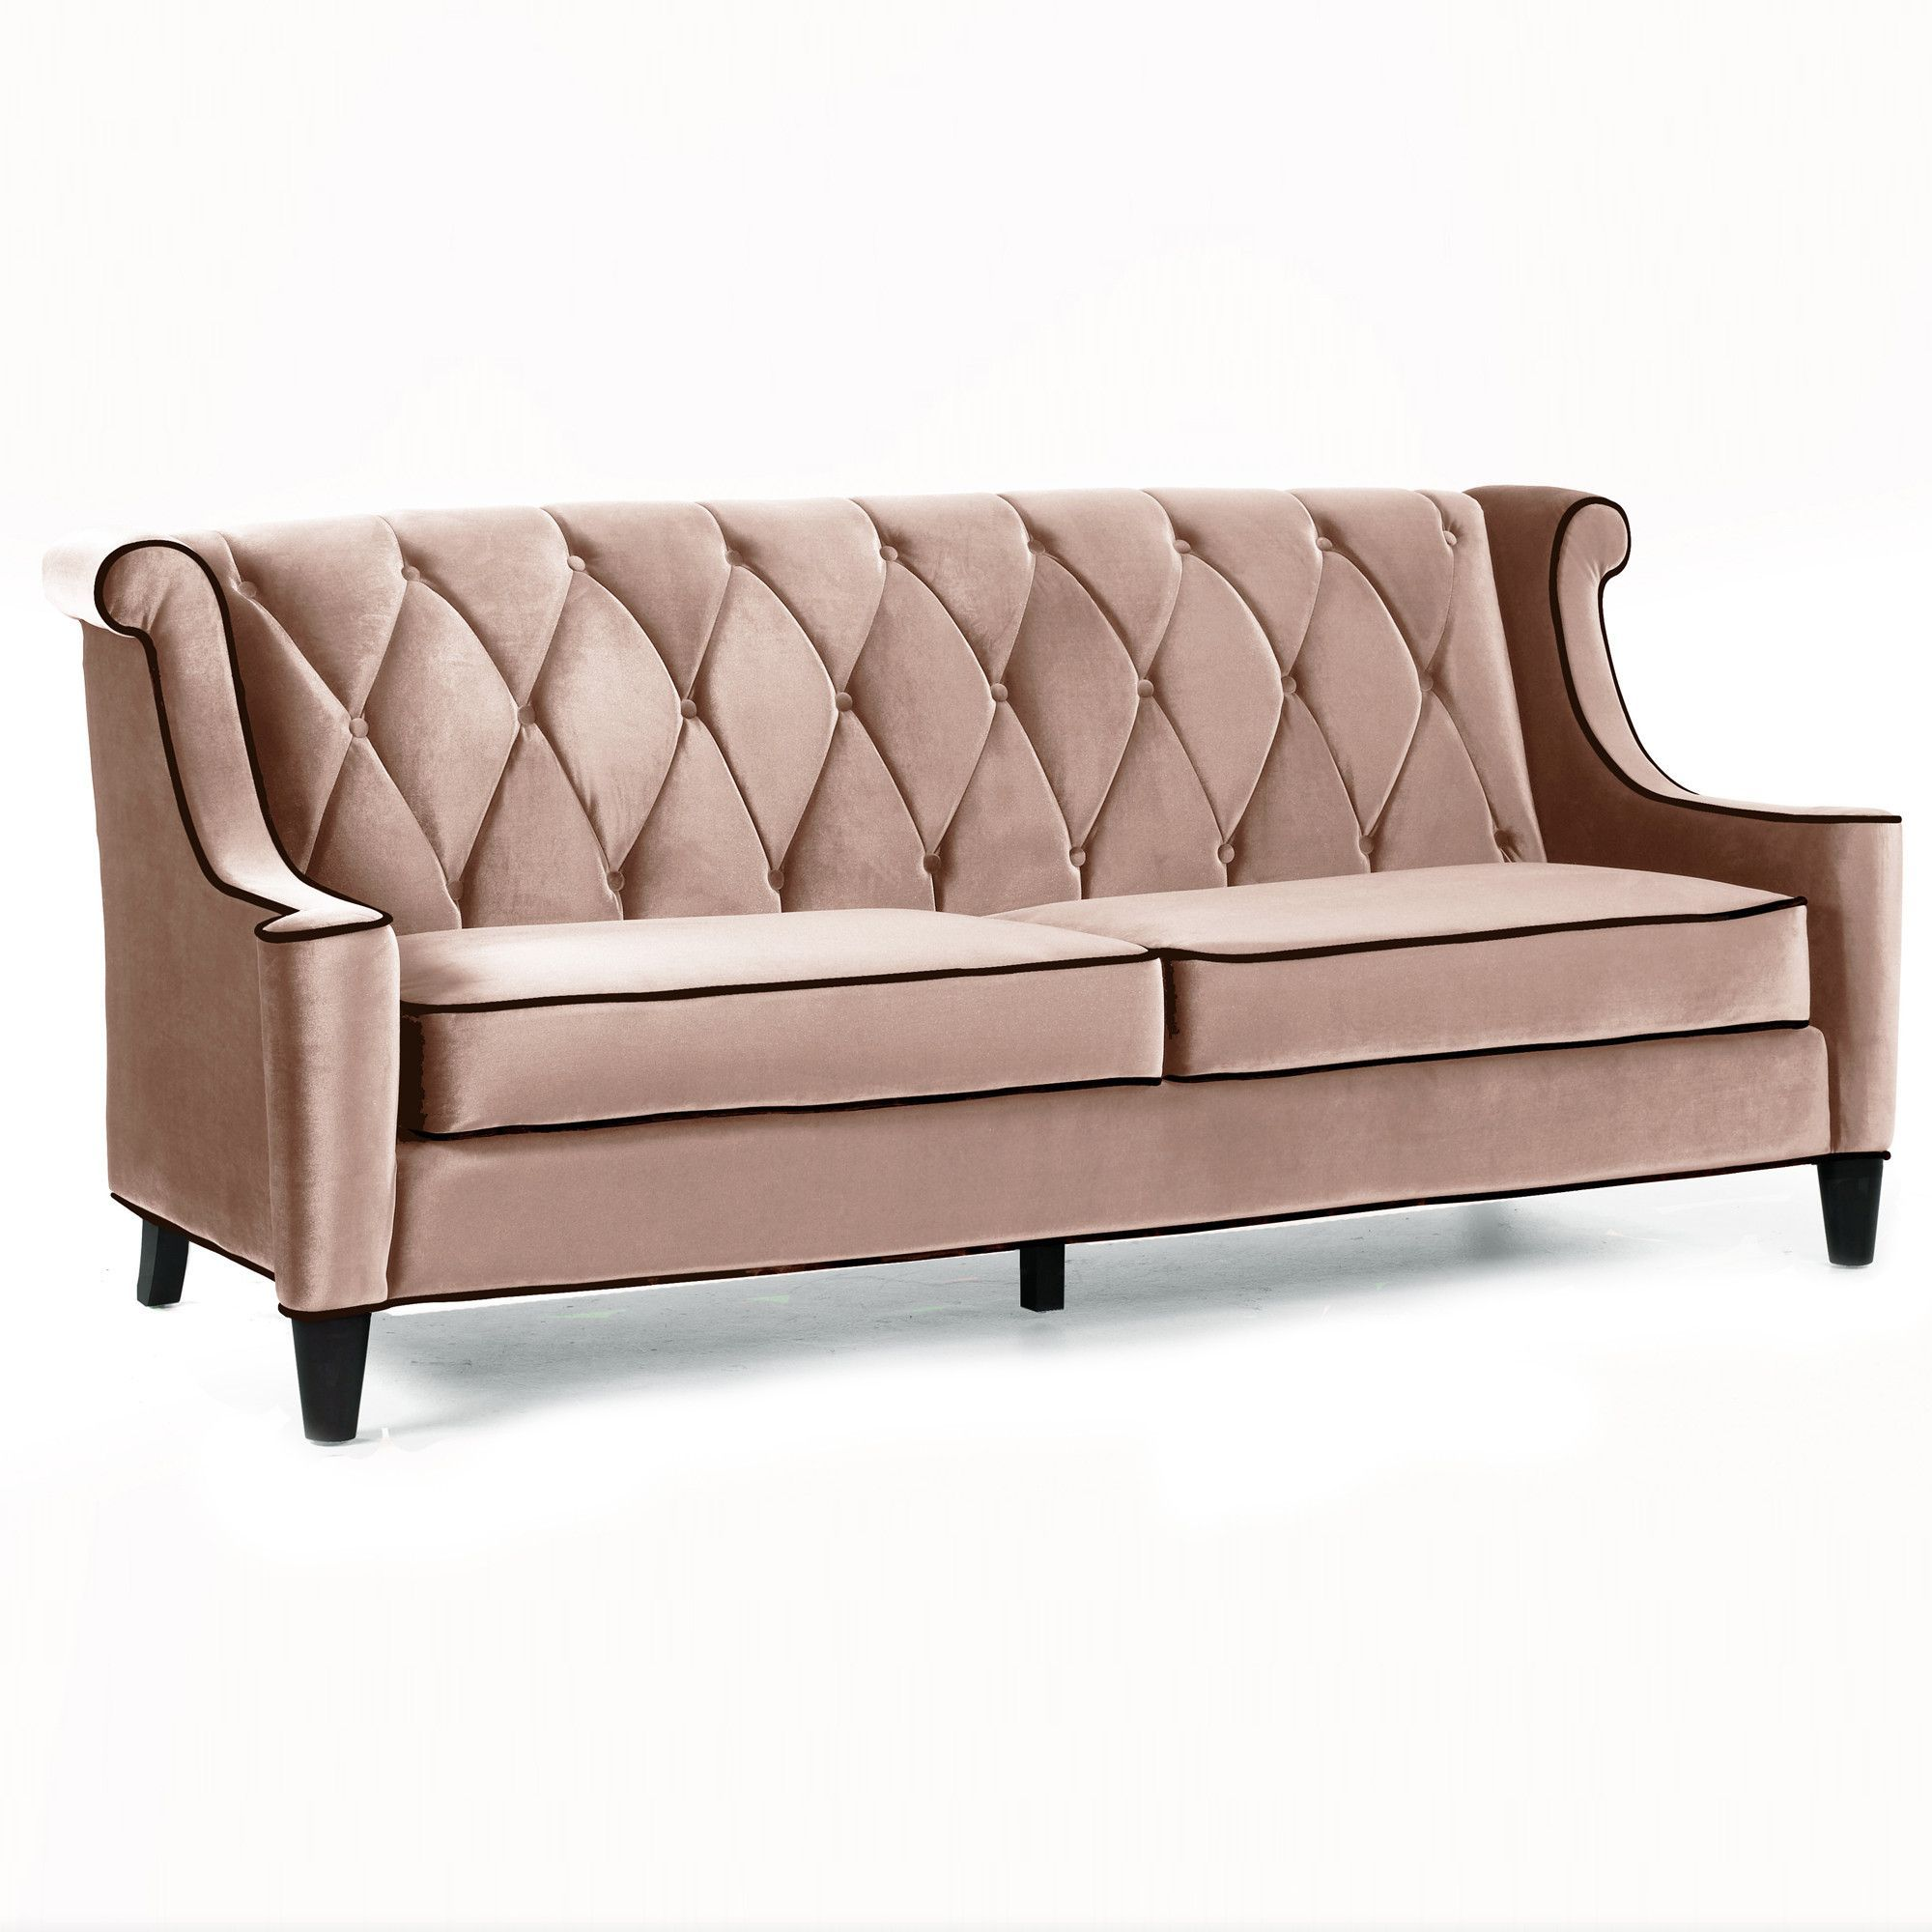 Best Barrister Sofa In Caramel Velvet Retro Sofa Velvet Sofa 400 x 300